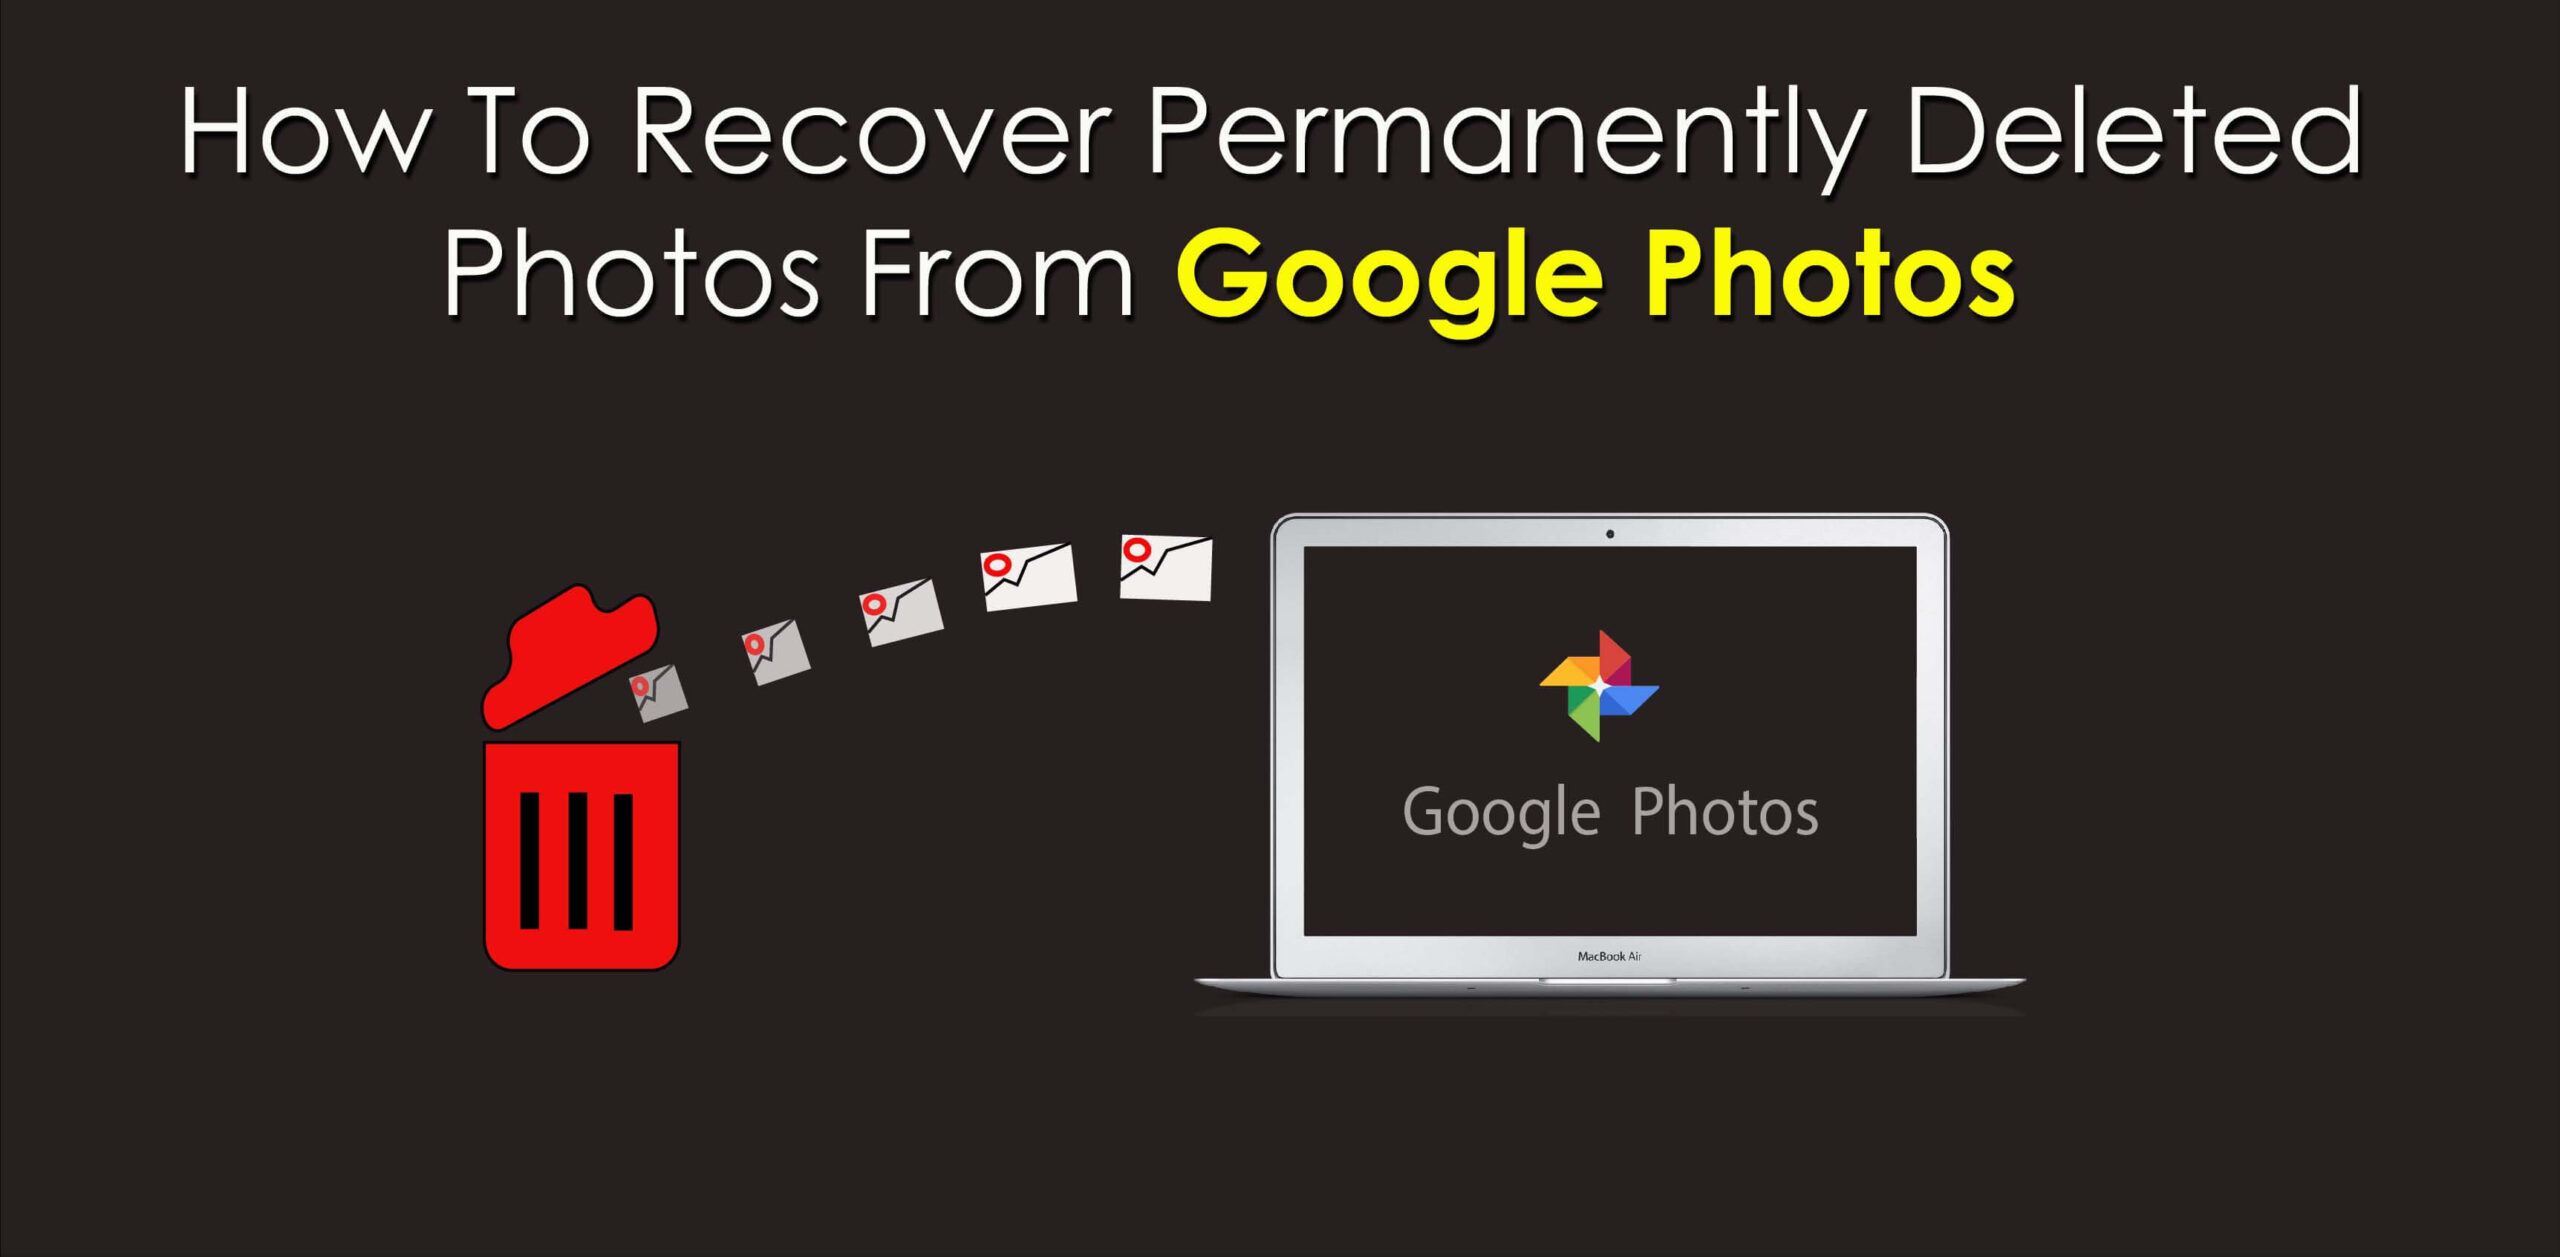 Recover Permanently Deleted Photos From Google Photos